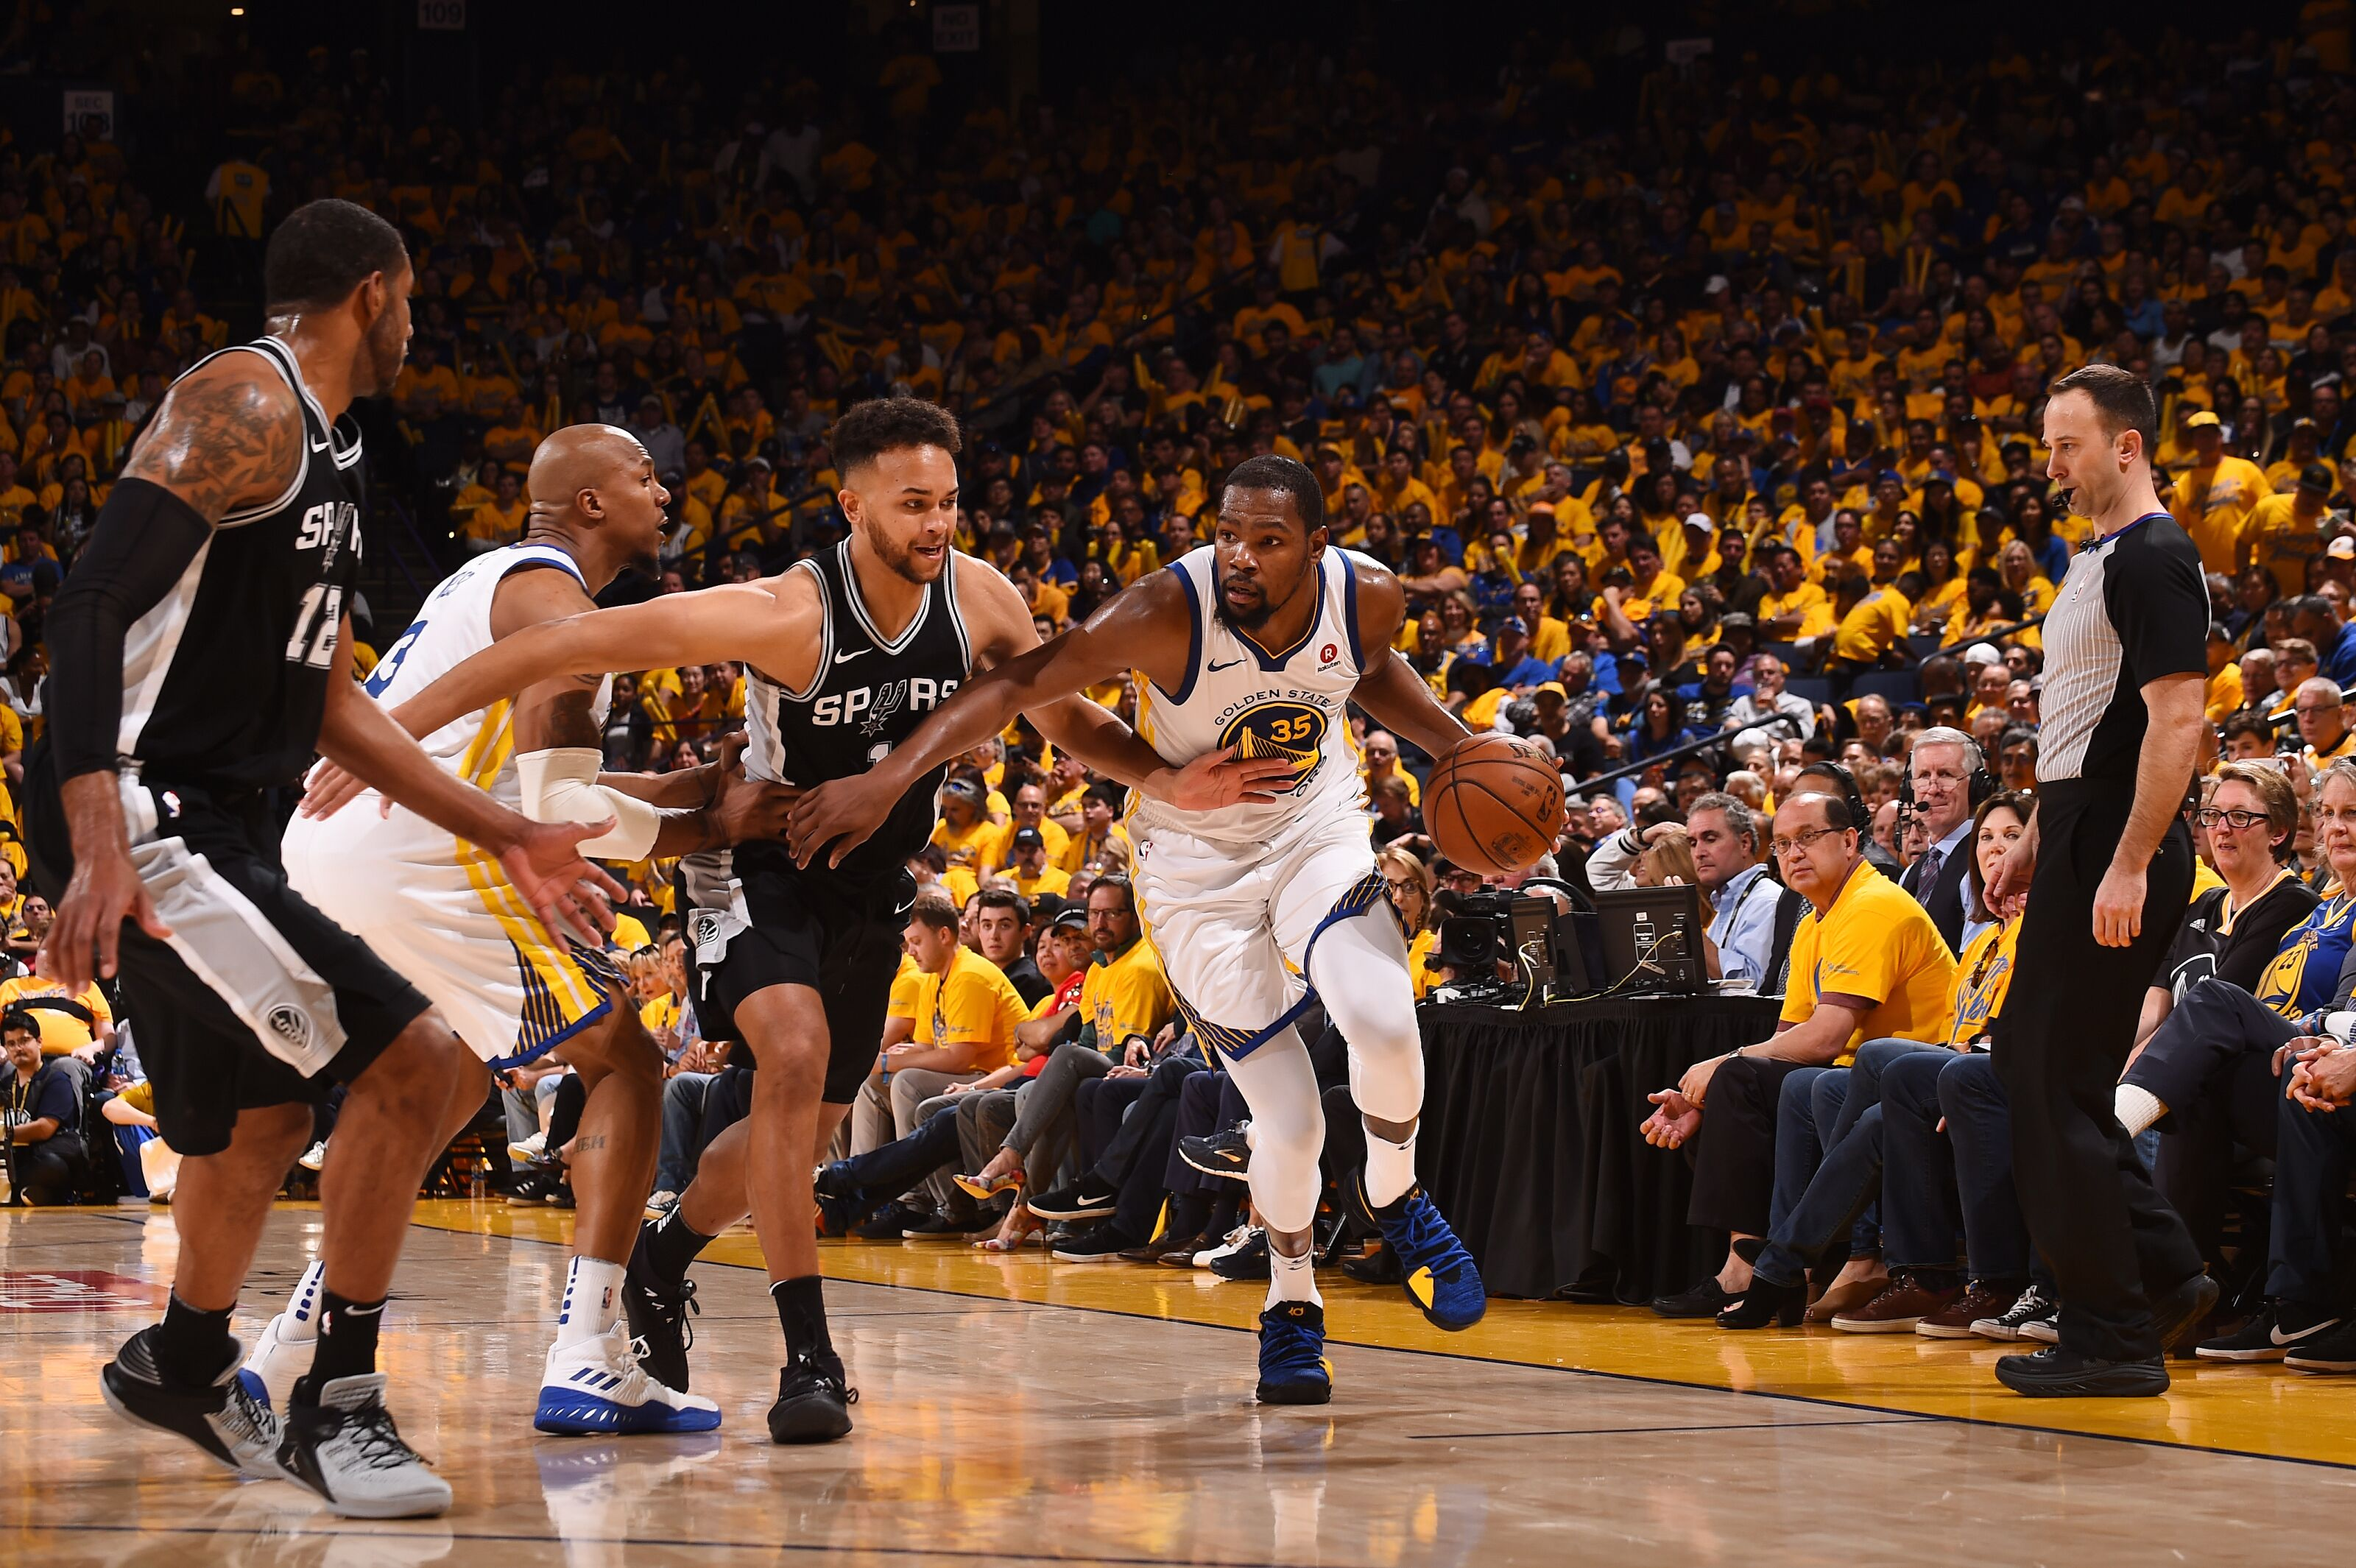 946306532-san-antonio-spurs-v-golden-state-warriors-game-one.jpg